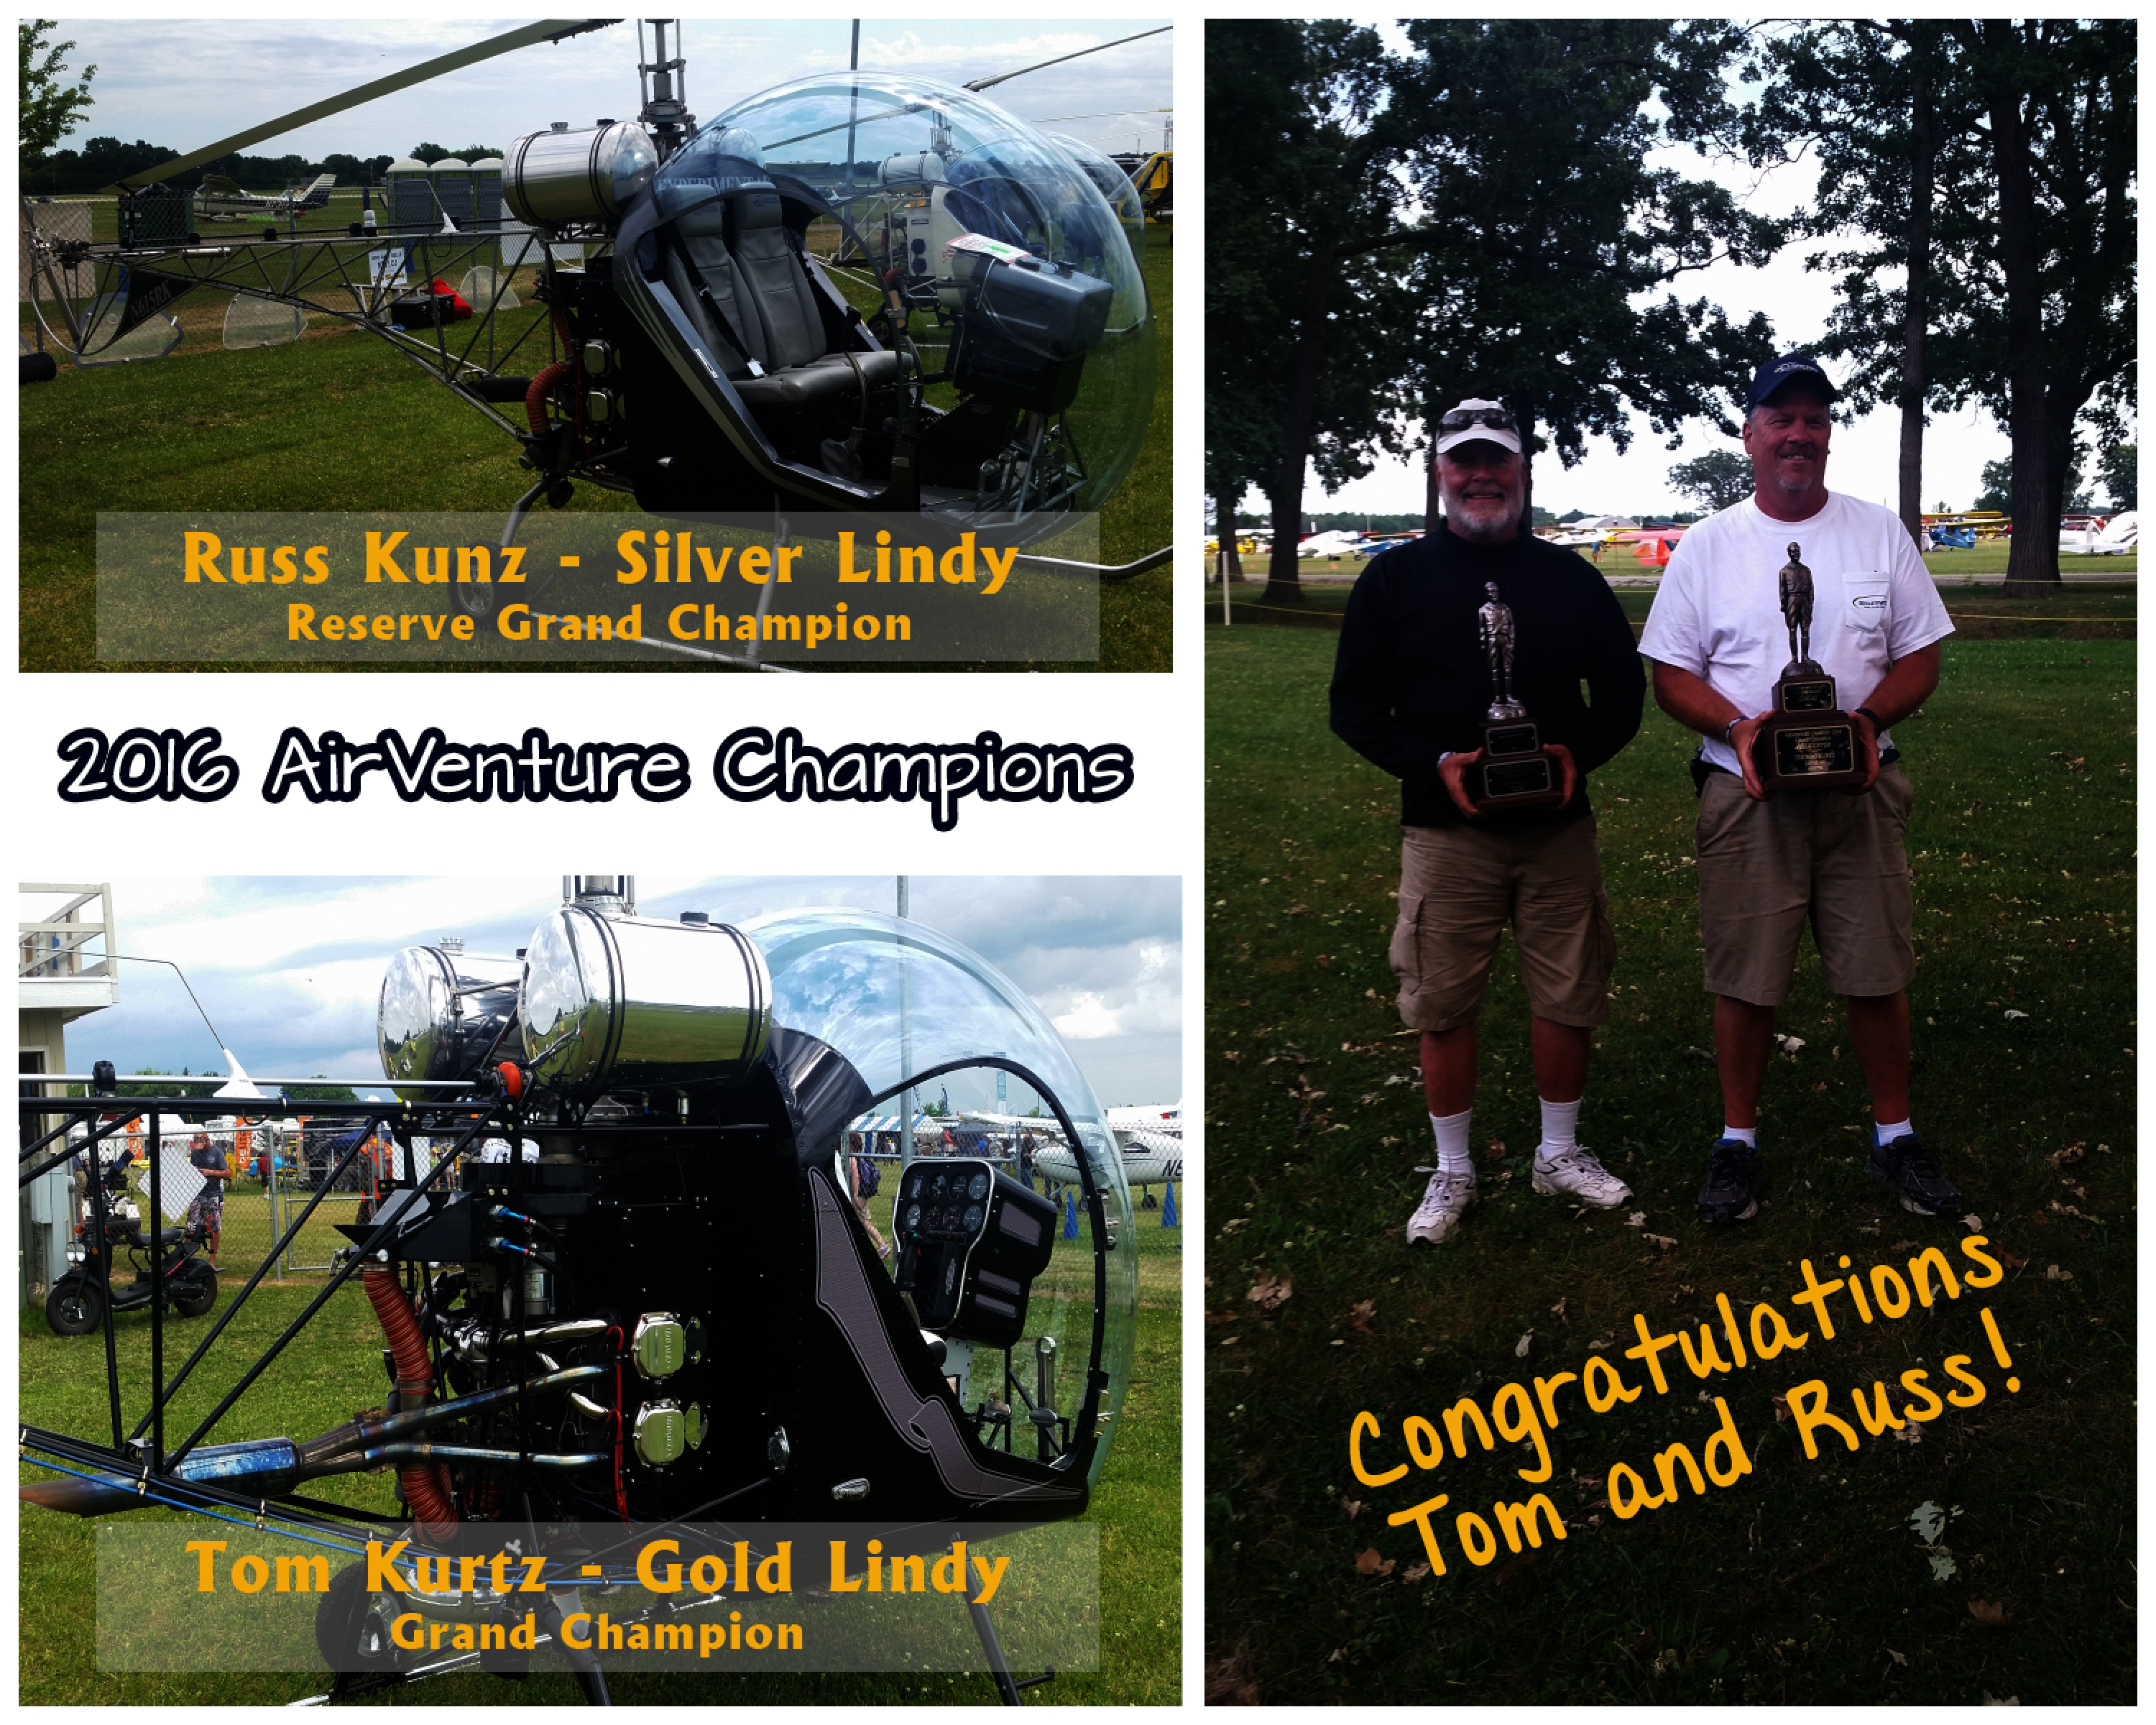 Congratulations to Russ Kunz and Tom Kurtz on your accomplishments and winnings at AirVenture 2016!